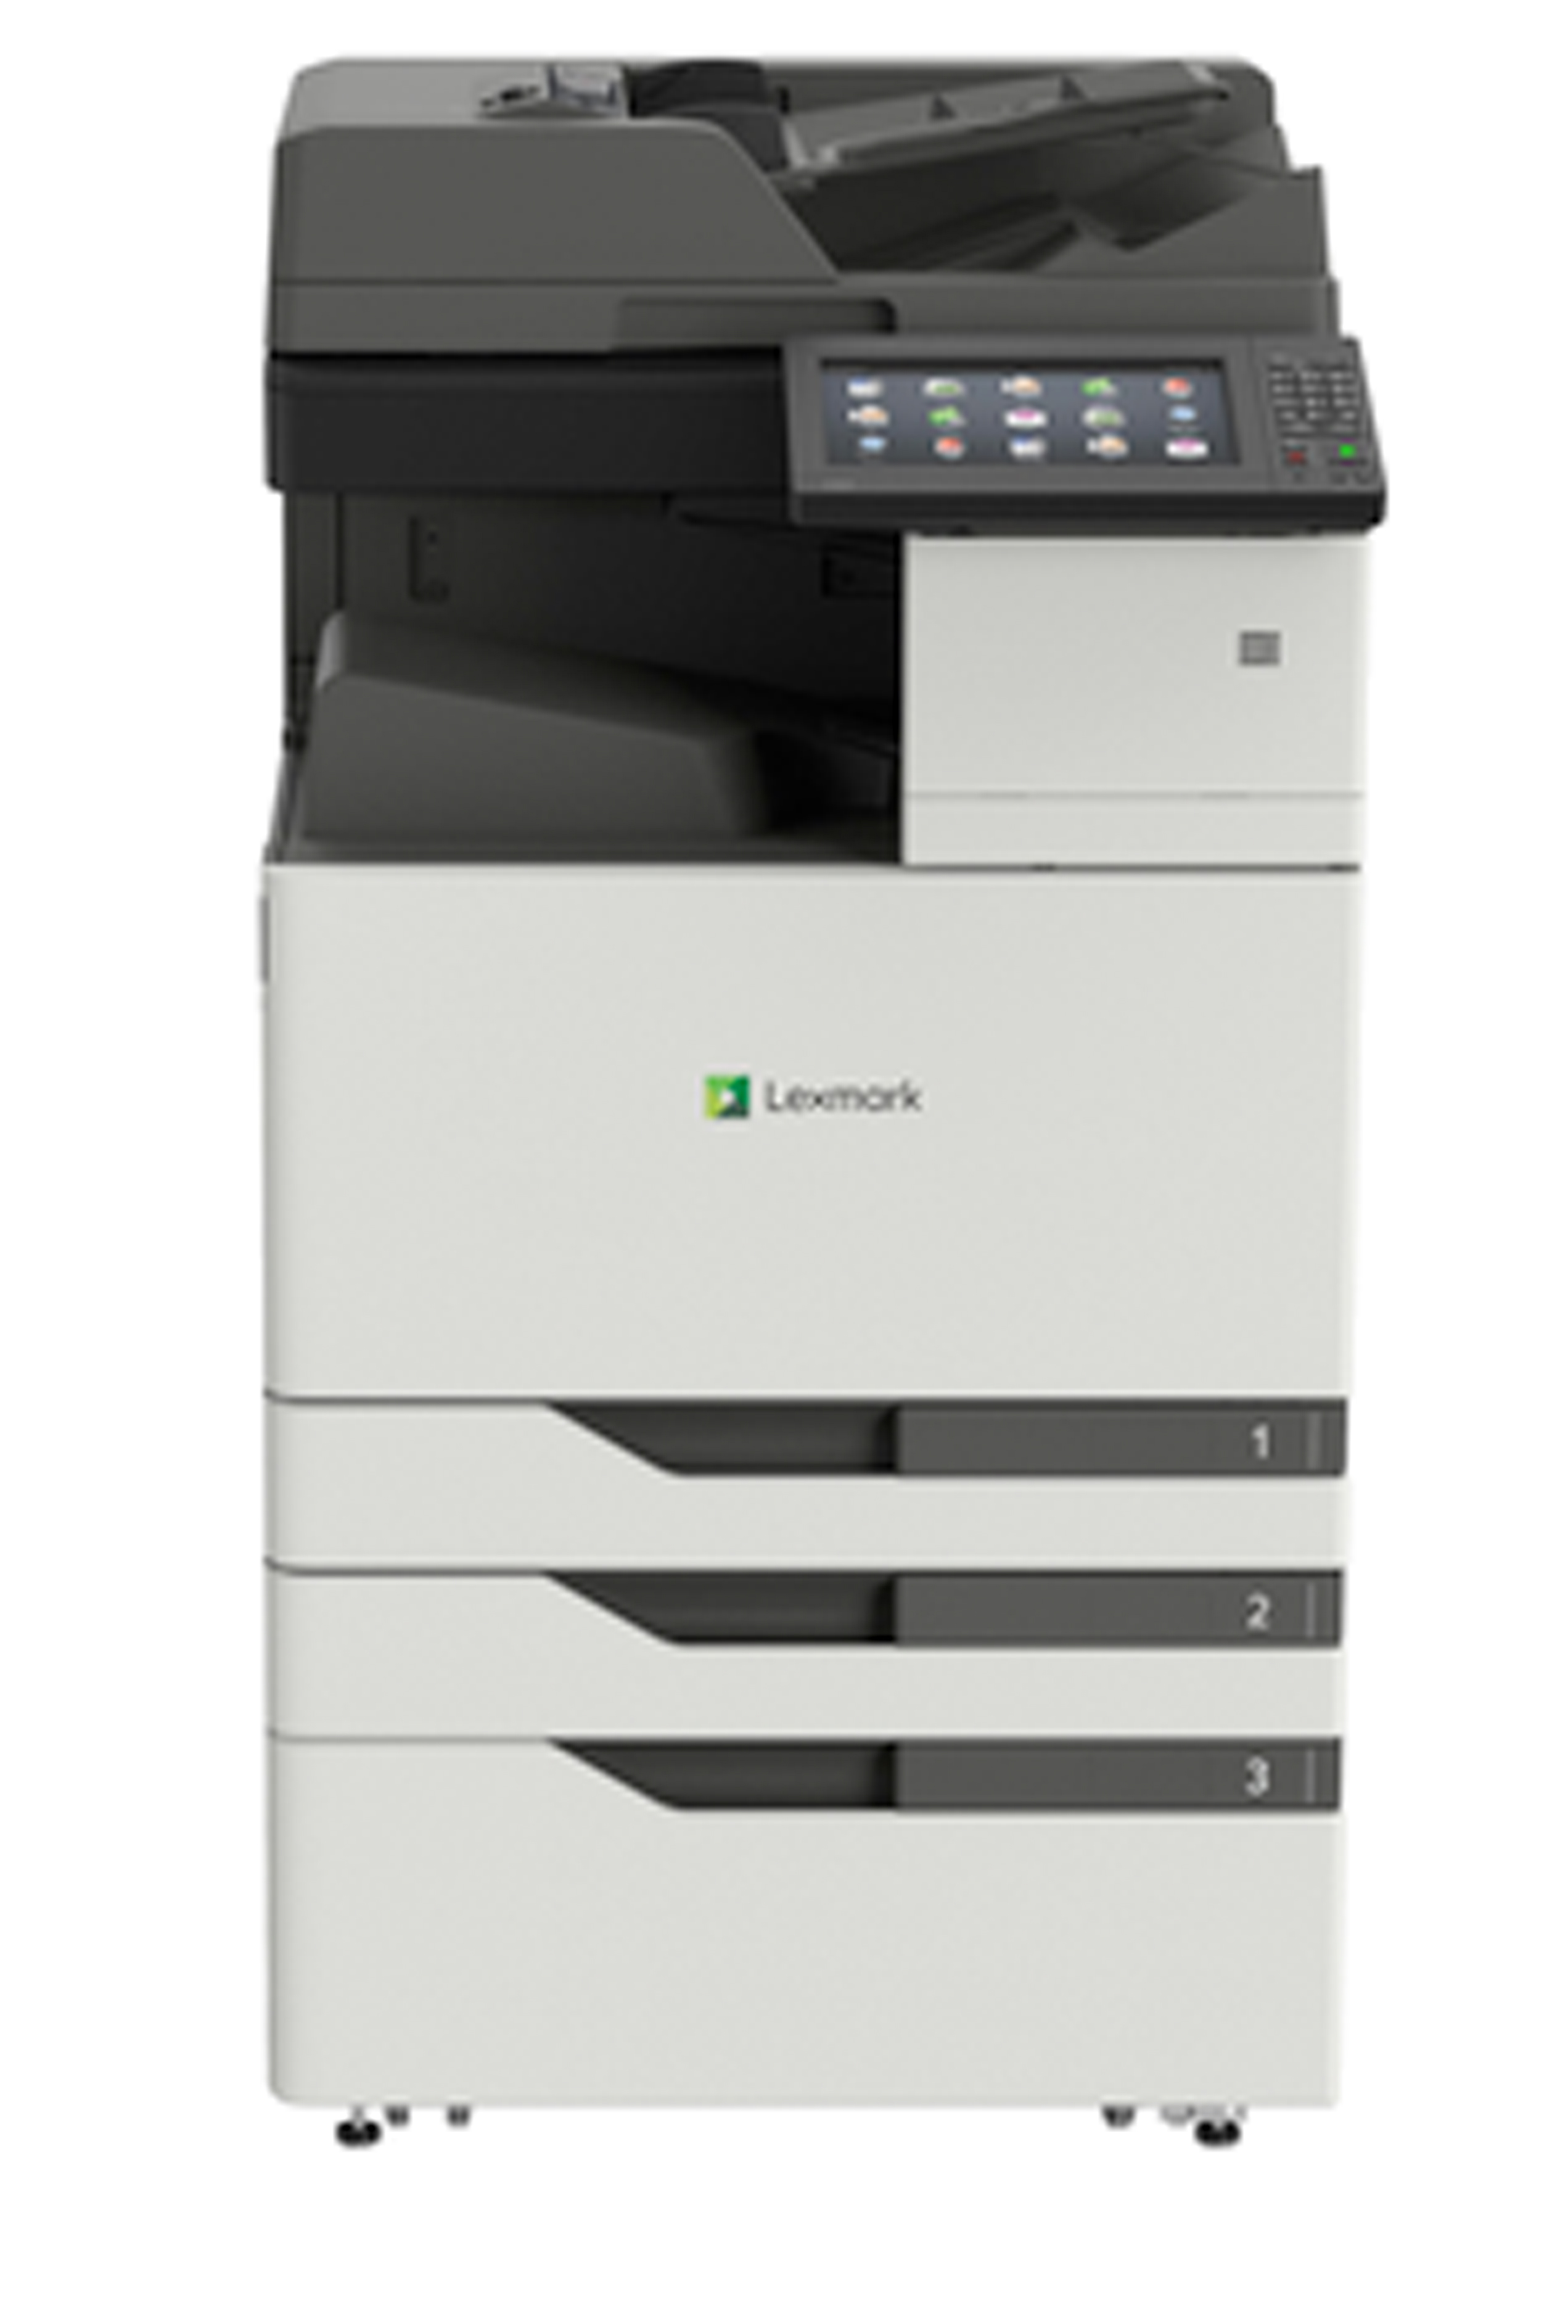 Lexmark LEXMARK CX923DXE MULTIFUNCTION PRINTER (55 ppm)